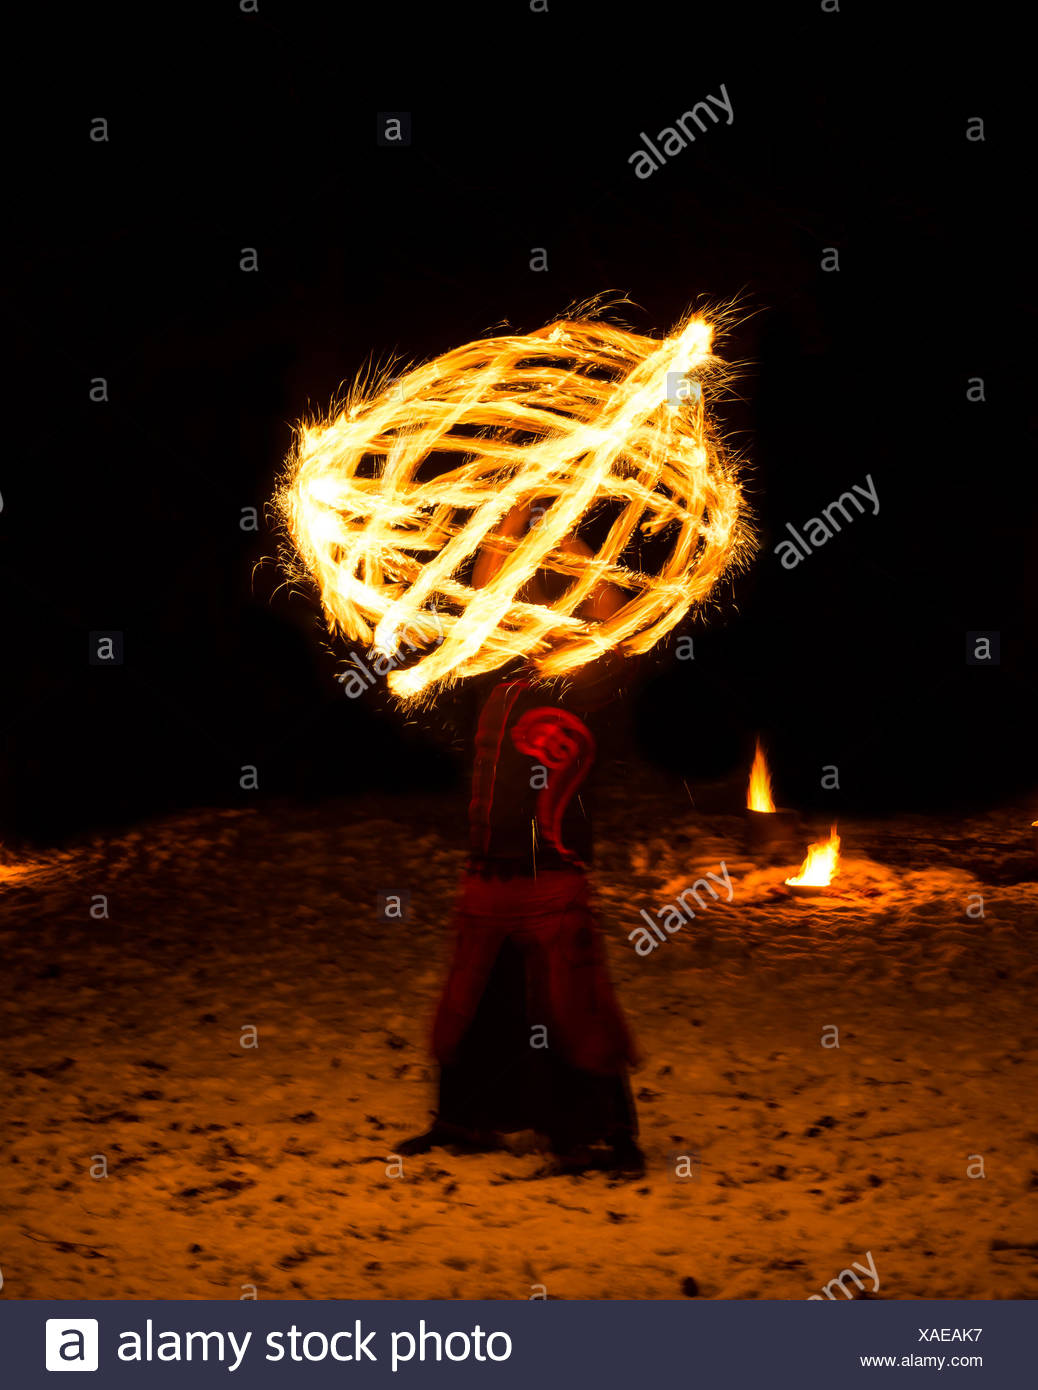 fire games - Stock Image